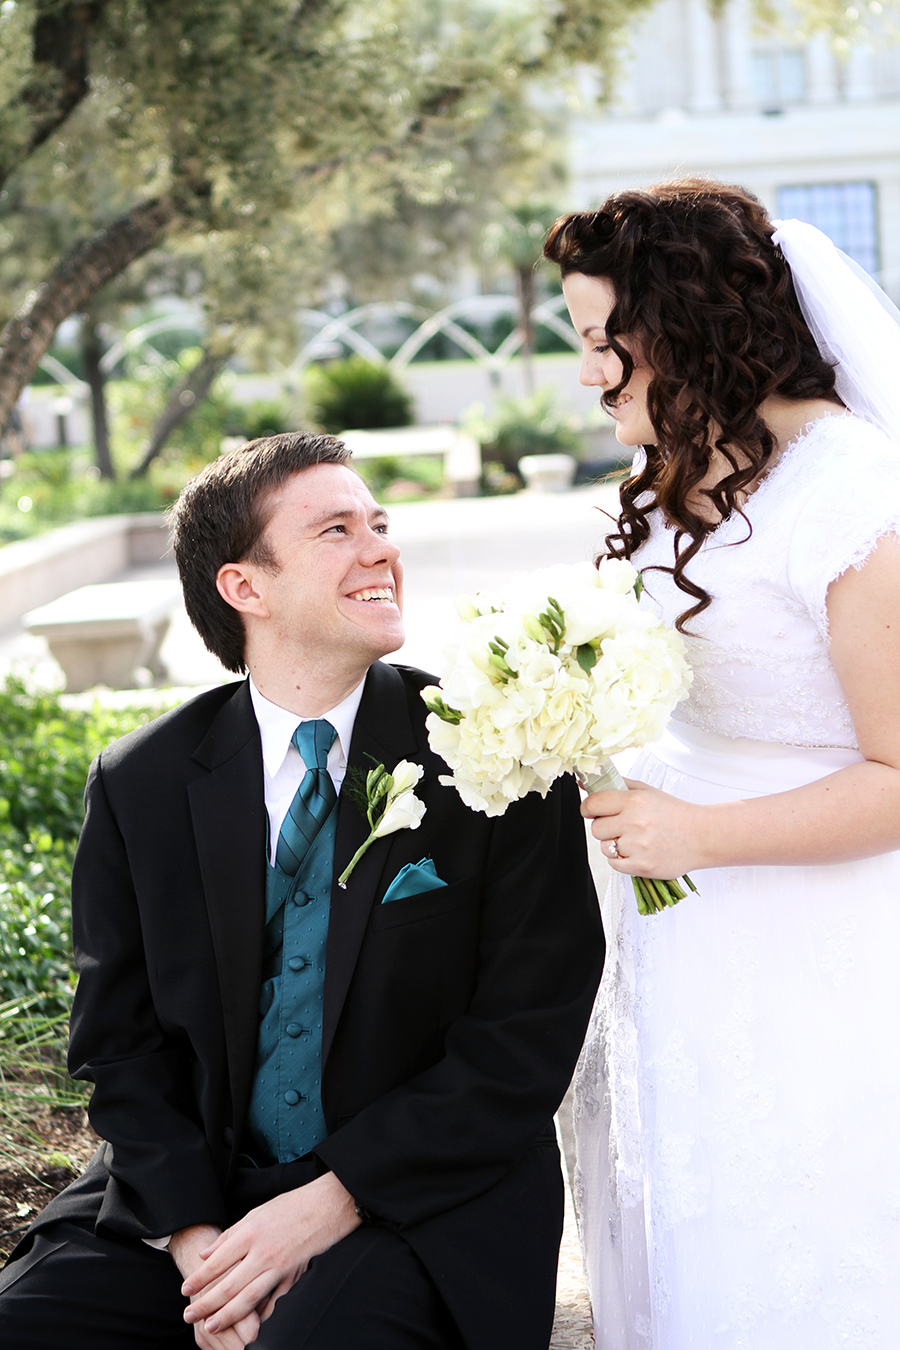 falling in love dating Falling in love is marked by a tendency to reorder your daily priorities and/or change your clothing, mannerisms,  10 best online dating sites author bio.